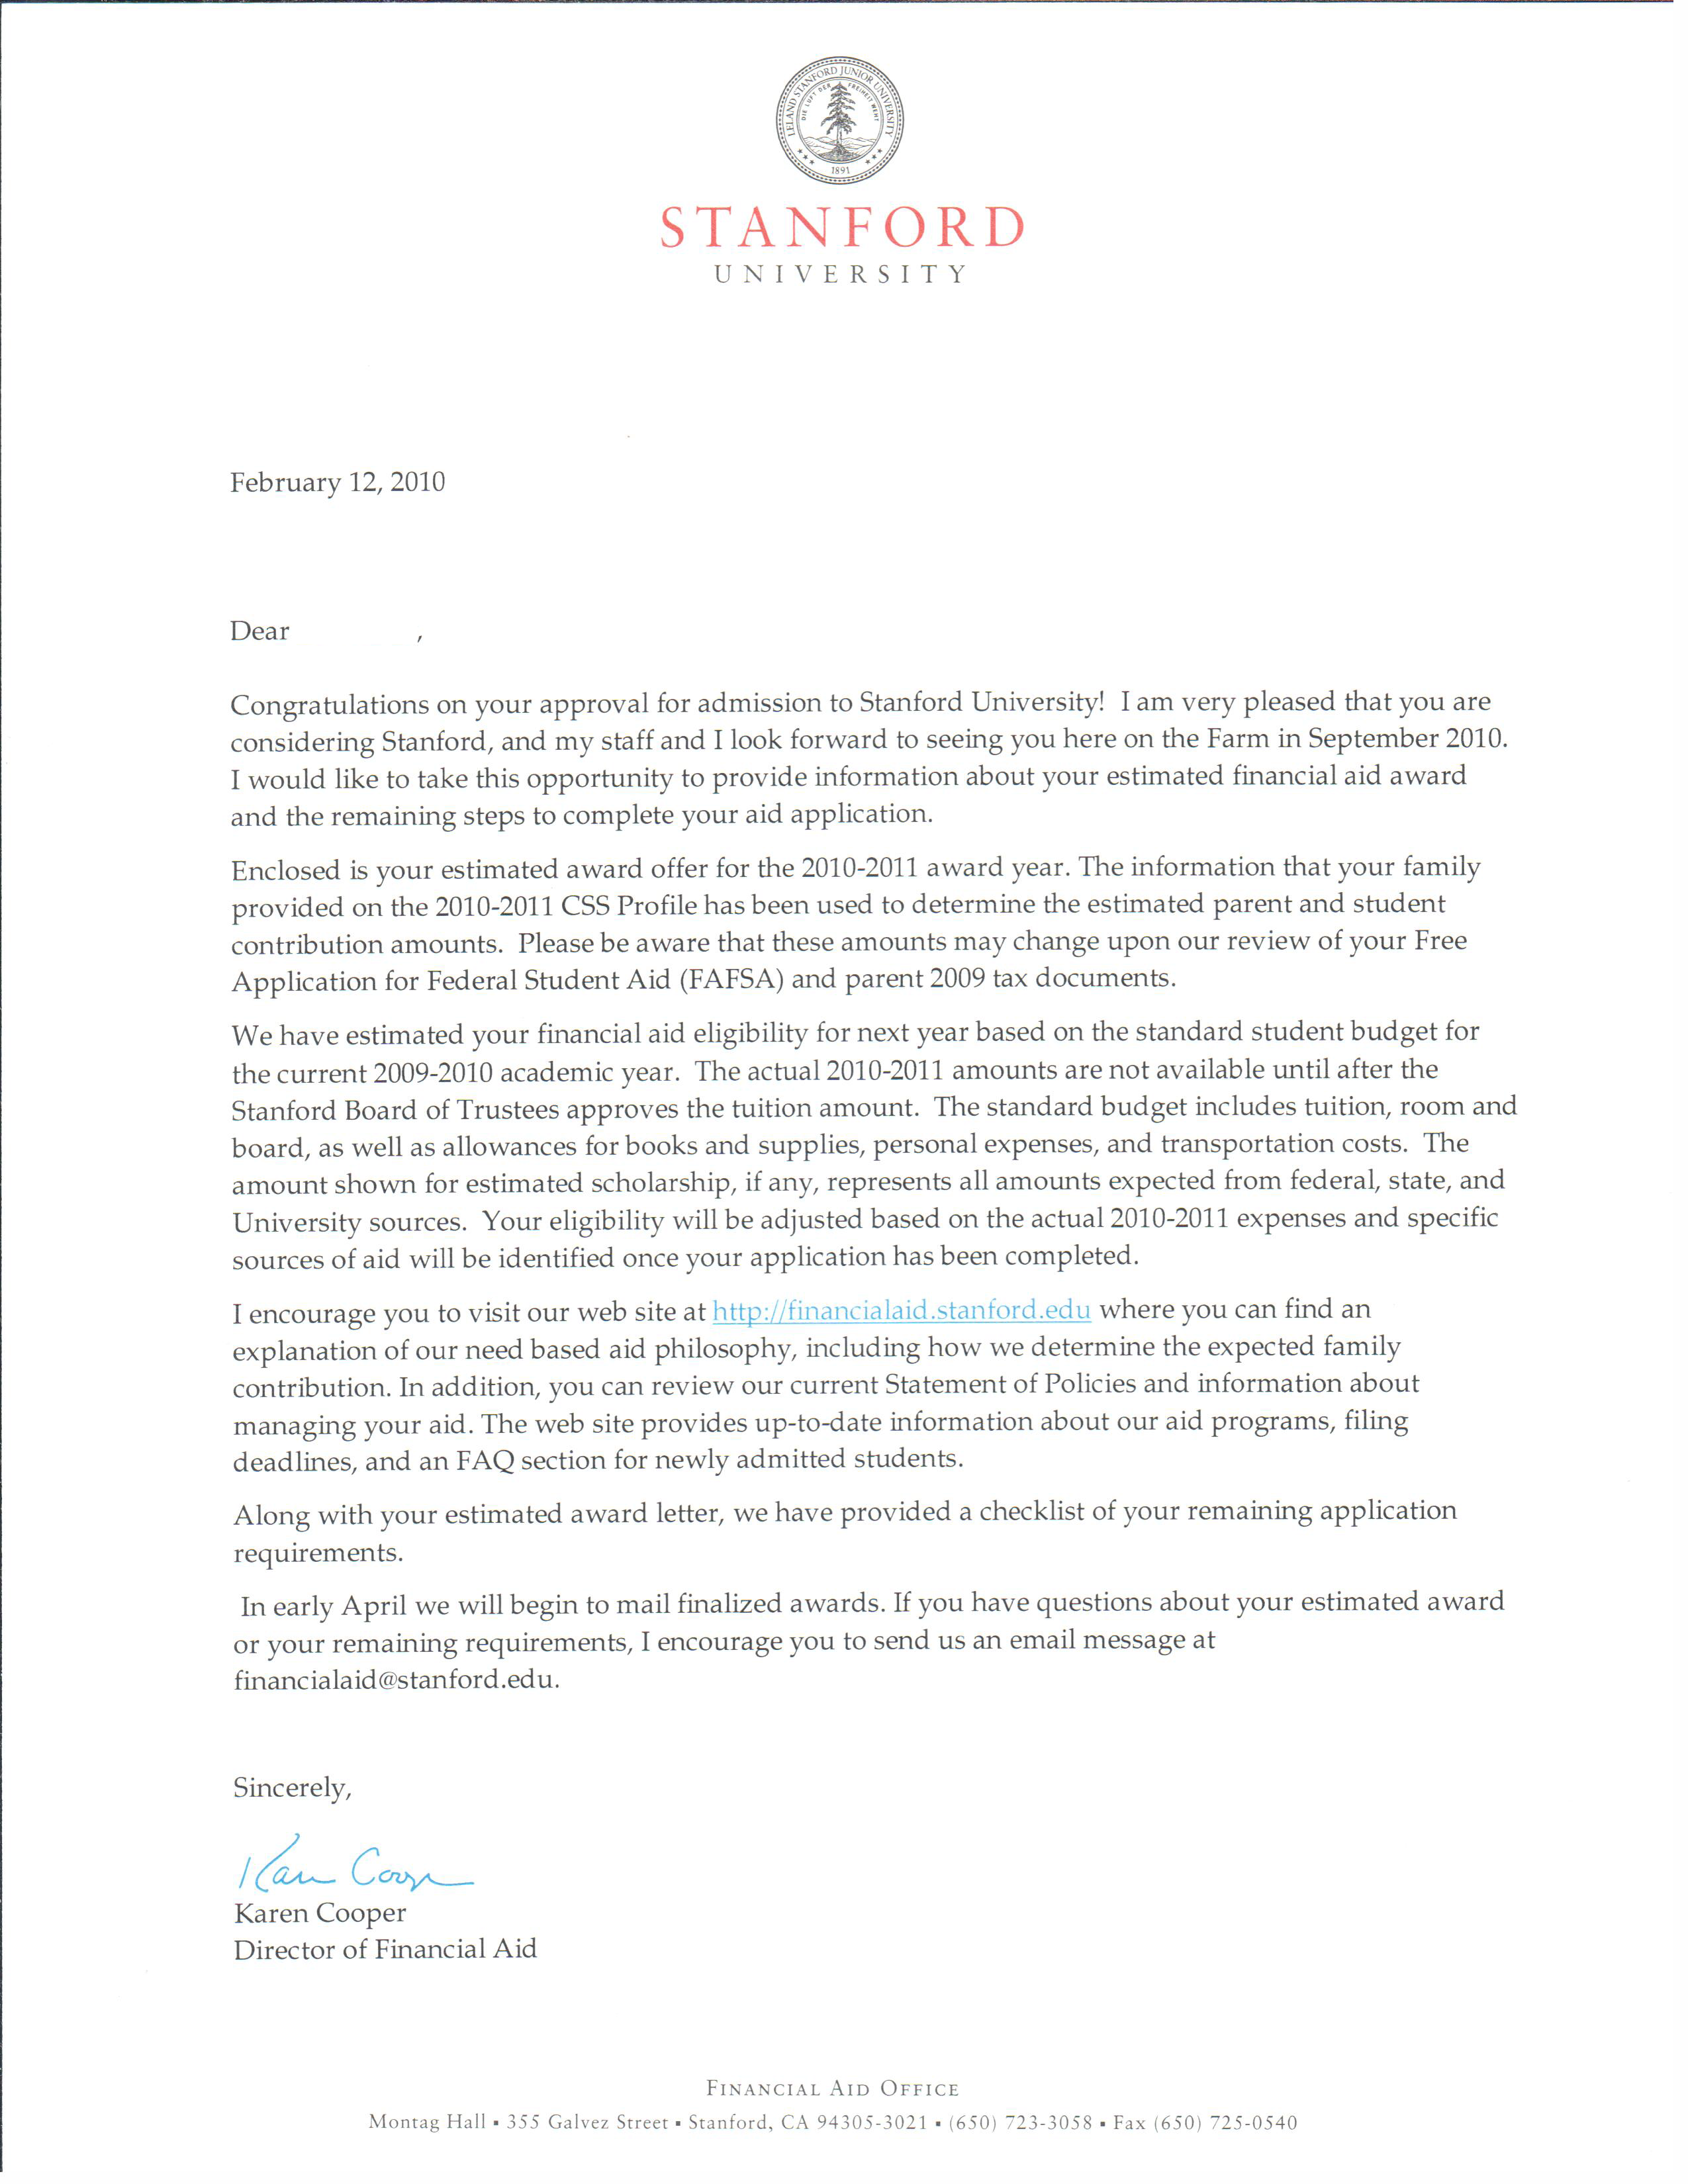 Does Stanford send 'likely letters' to undergraduate